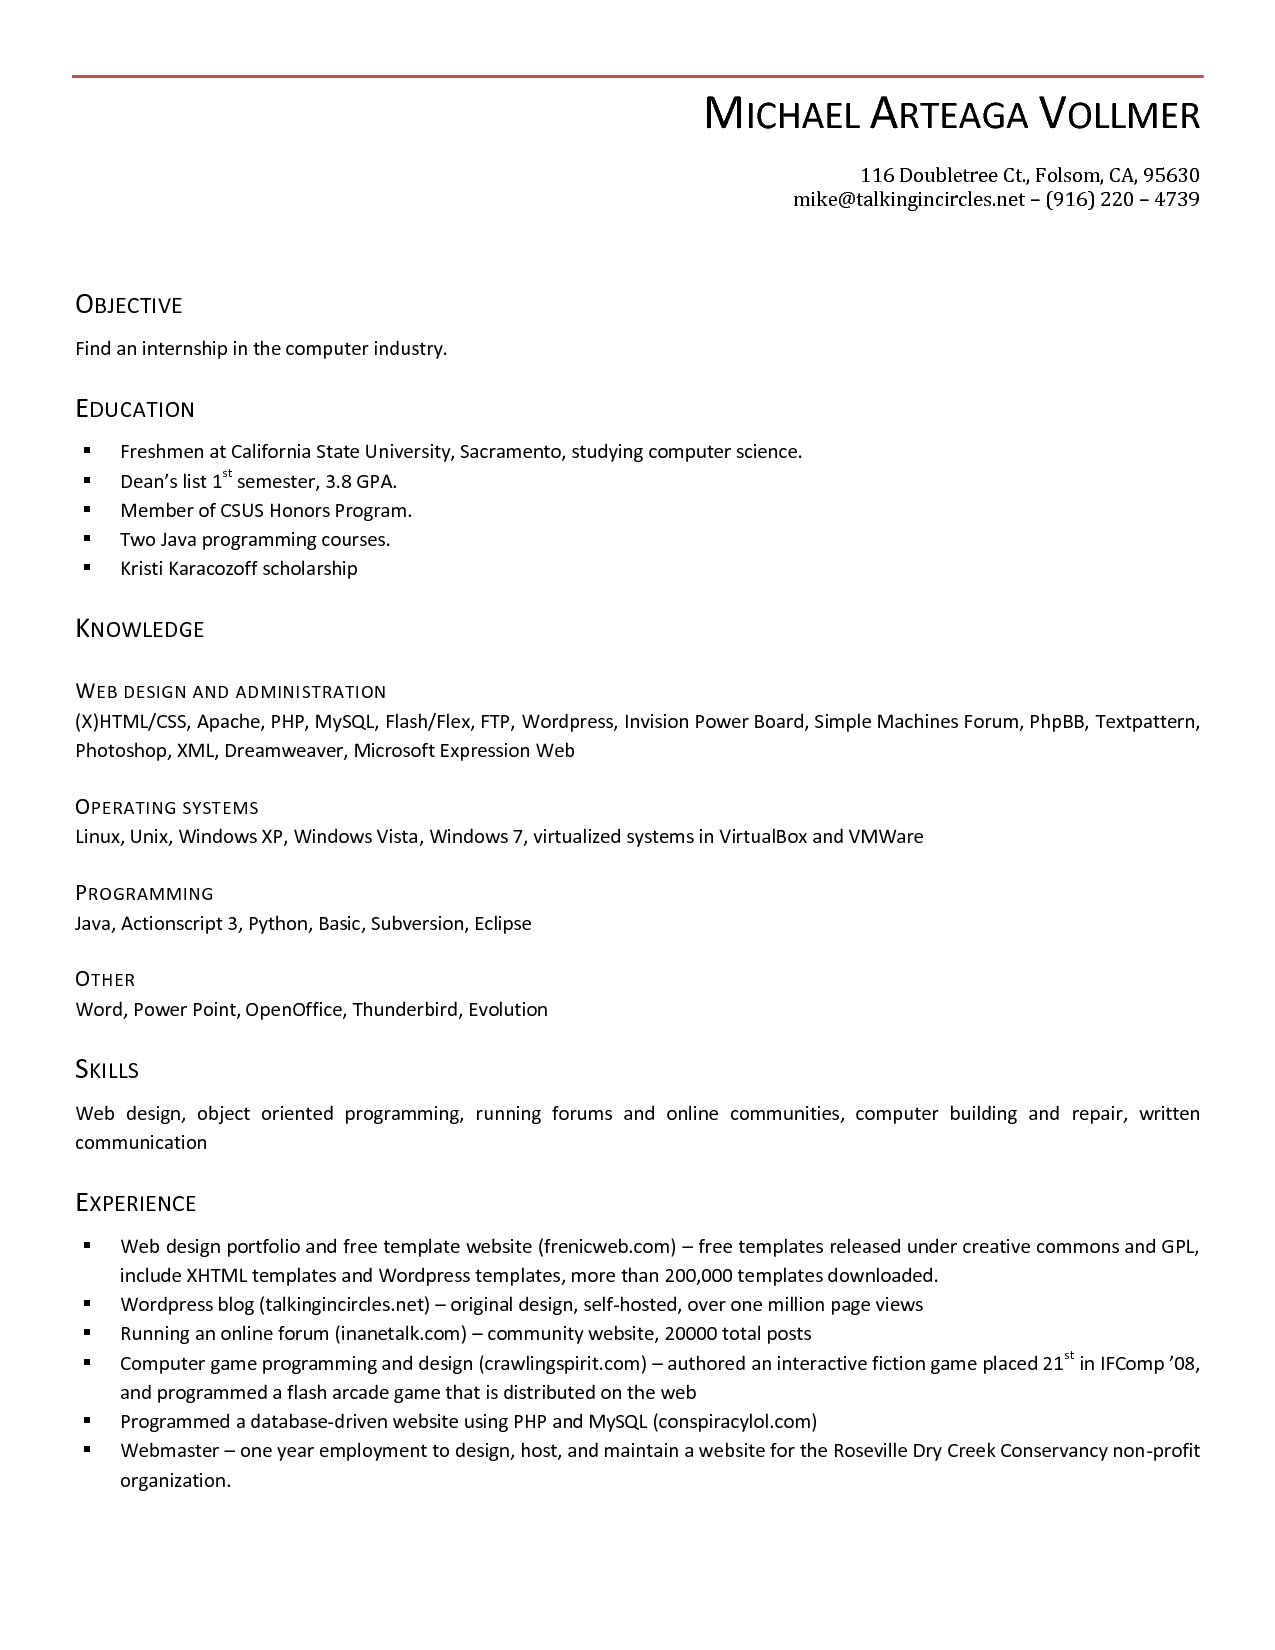 Resume Templates For Openoffice HDResume Templates Cover Letter - Open office resume templates free download